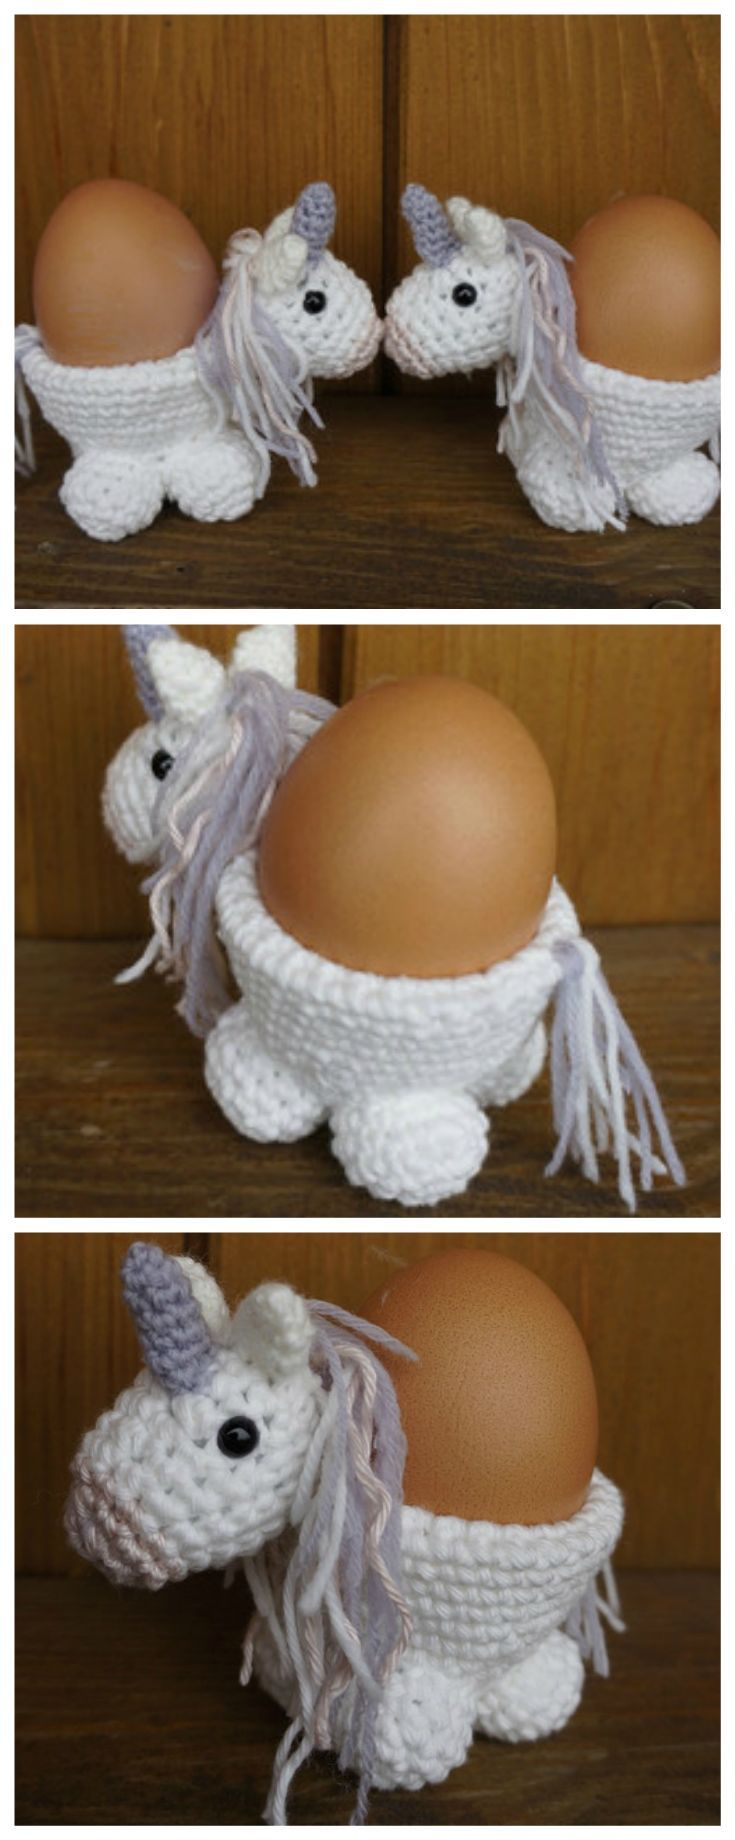 173 best kajoot images on Pinterest | Crocheted toys, Crochet baby ...